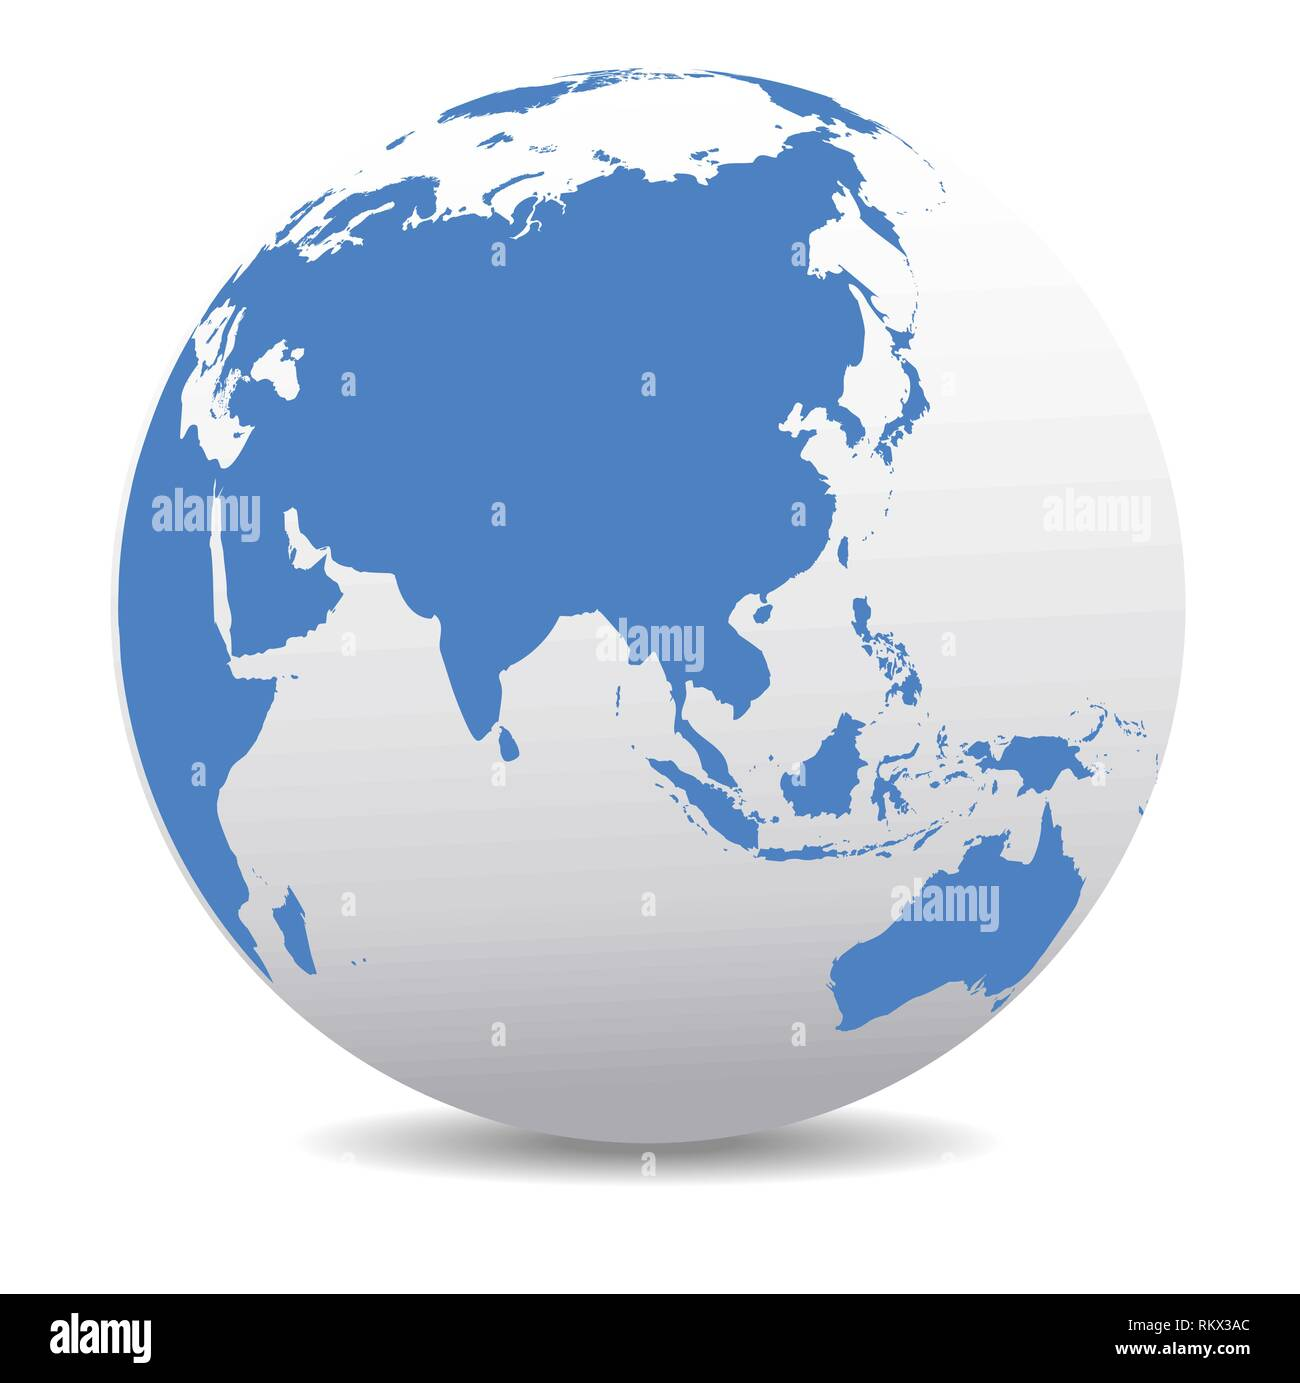 China and Asia, Global World, Vector Map Icon of the World ...